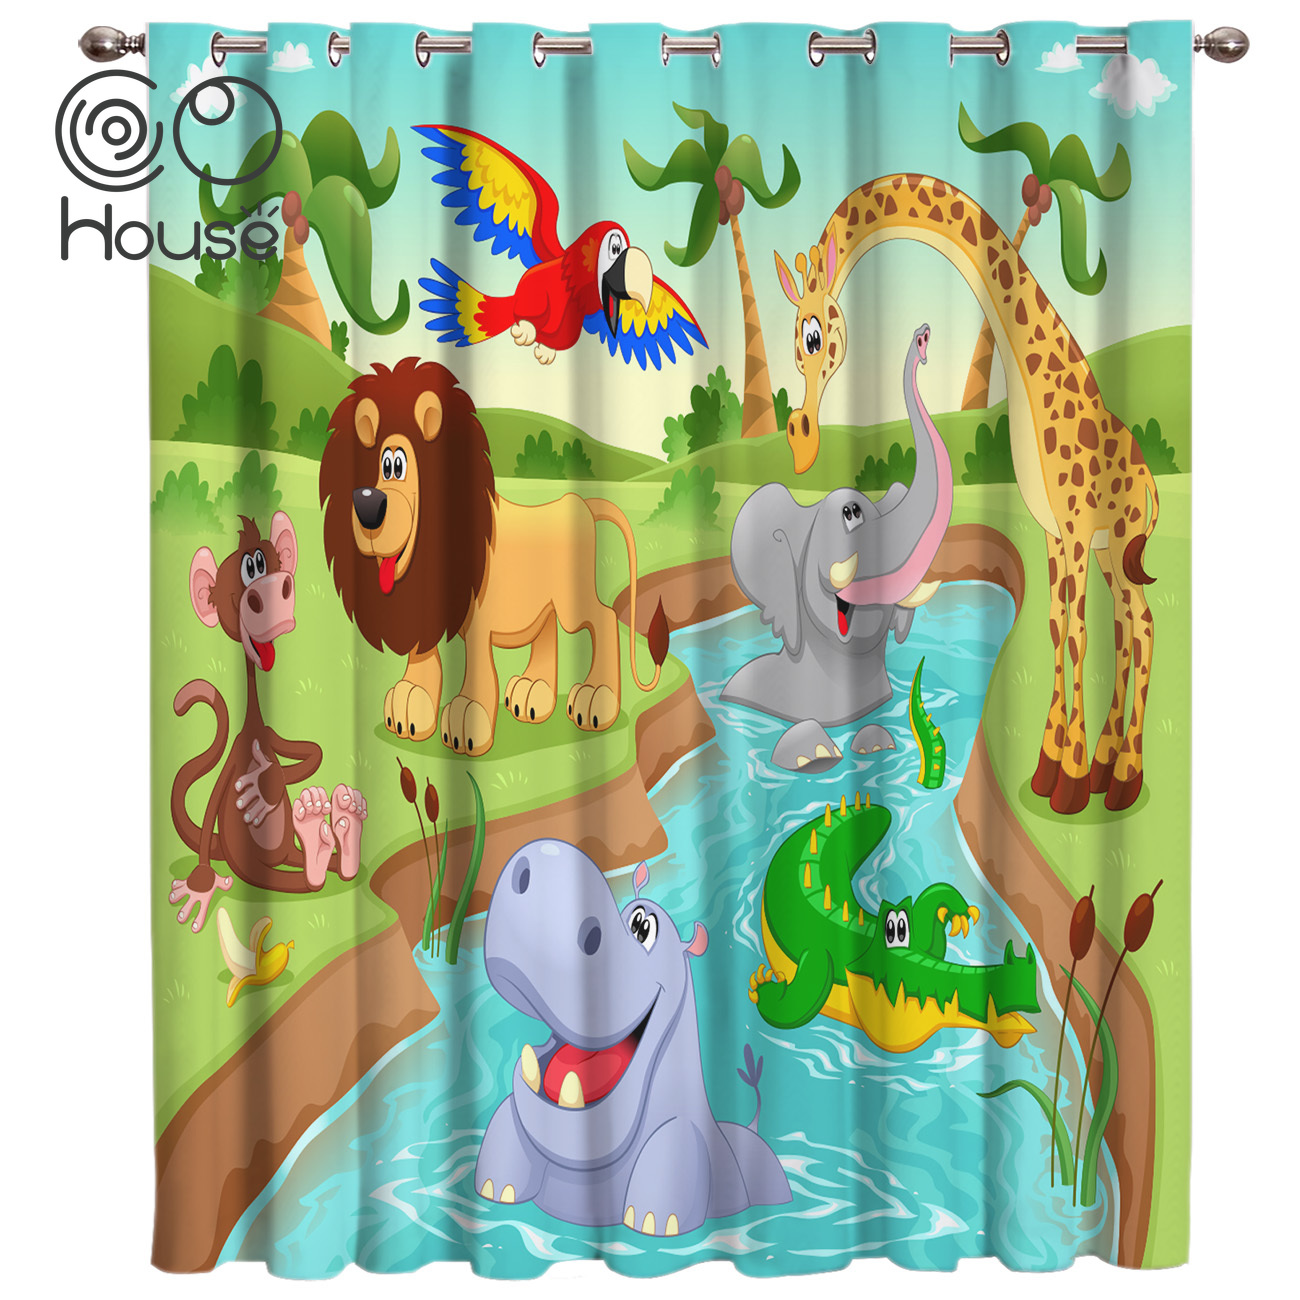 COCOHouse Cartoon Zoo Room Curtains Large Window Window Curtains Dark Curtain Lights Blackout Kitchen Outdoor Indoor Floral Drap